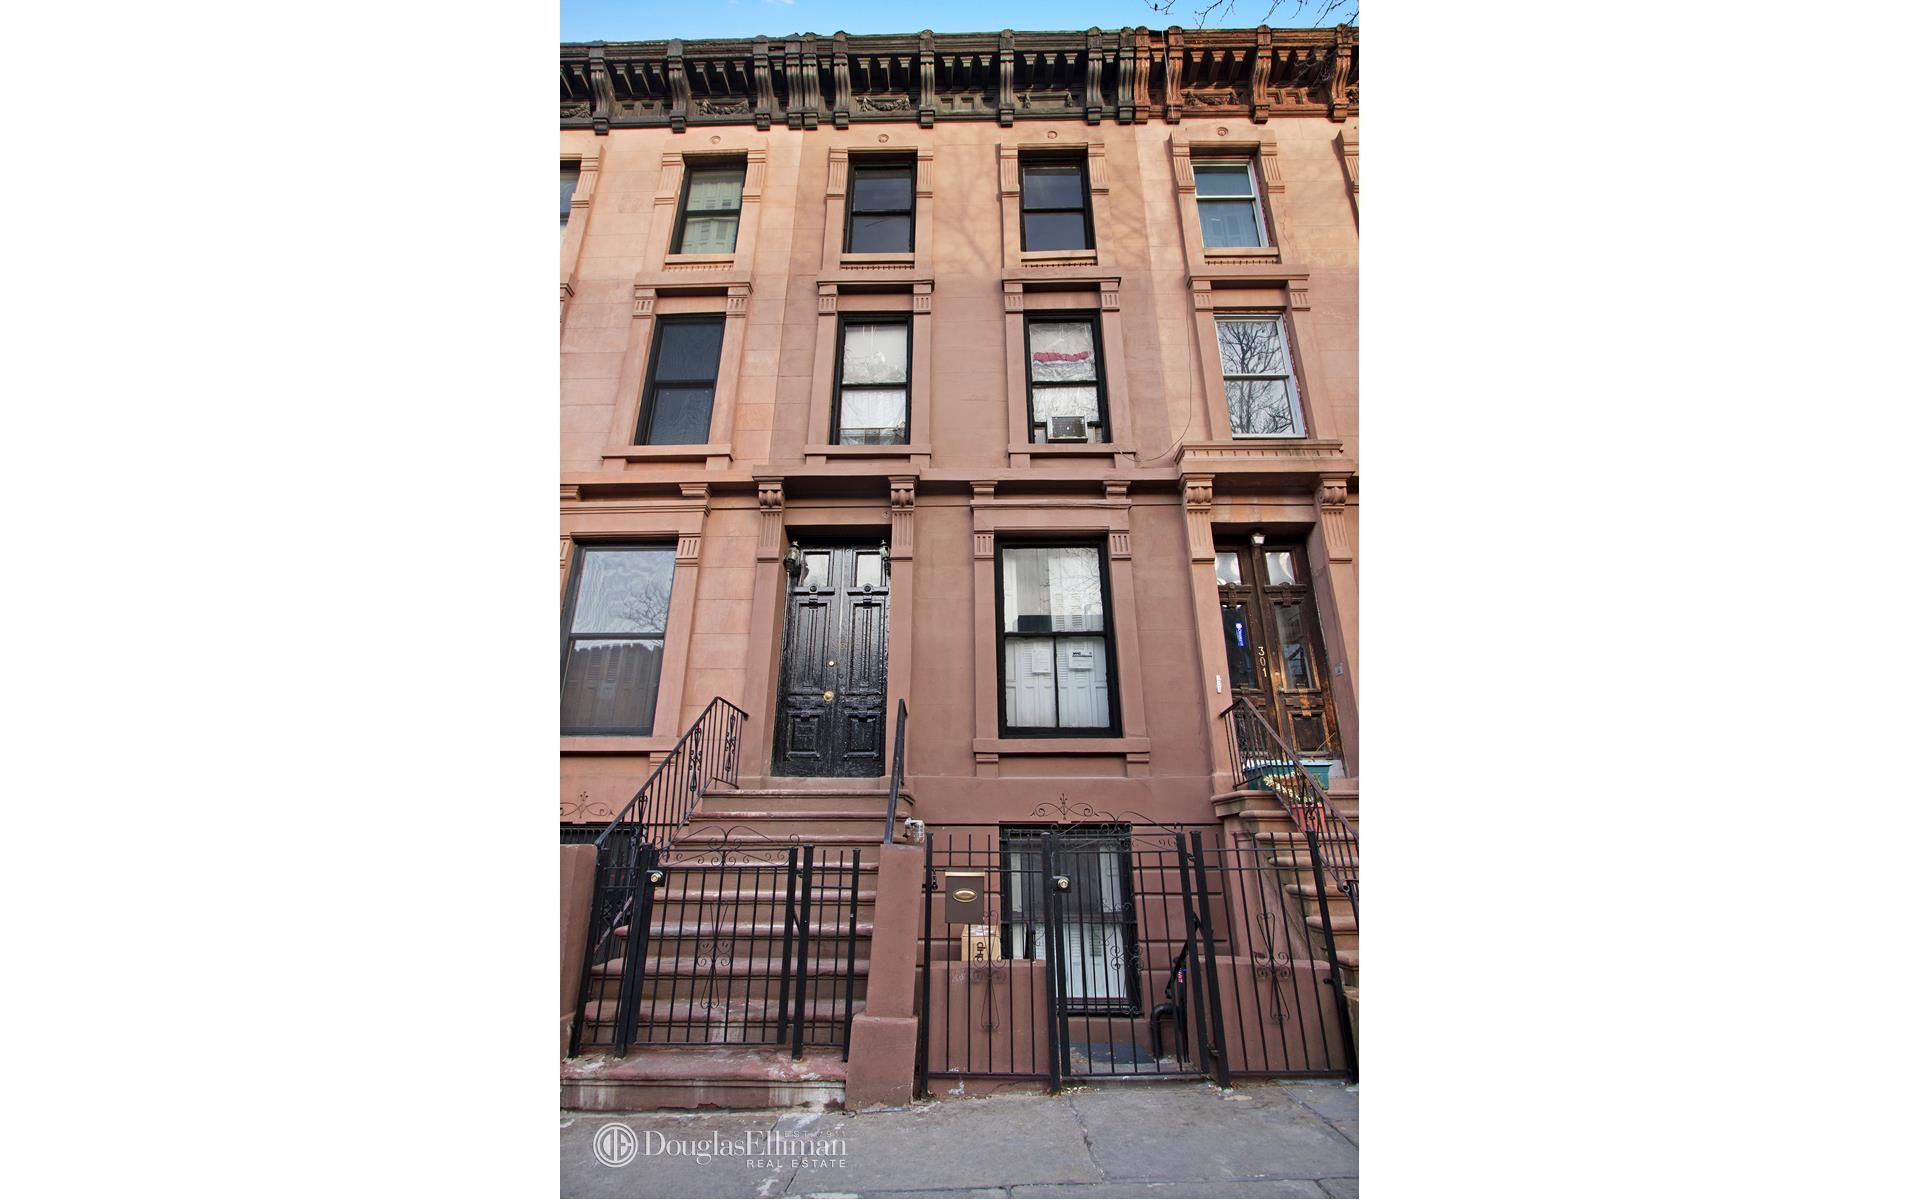 299 Vanderbilt Ave Photo 15 - ELLIMAN-2558258